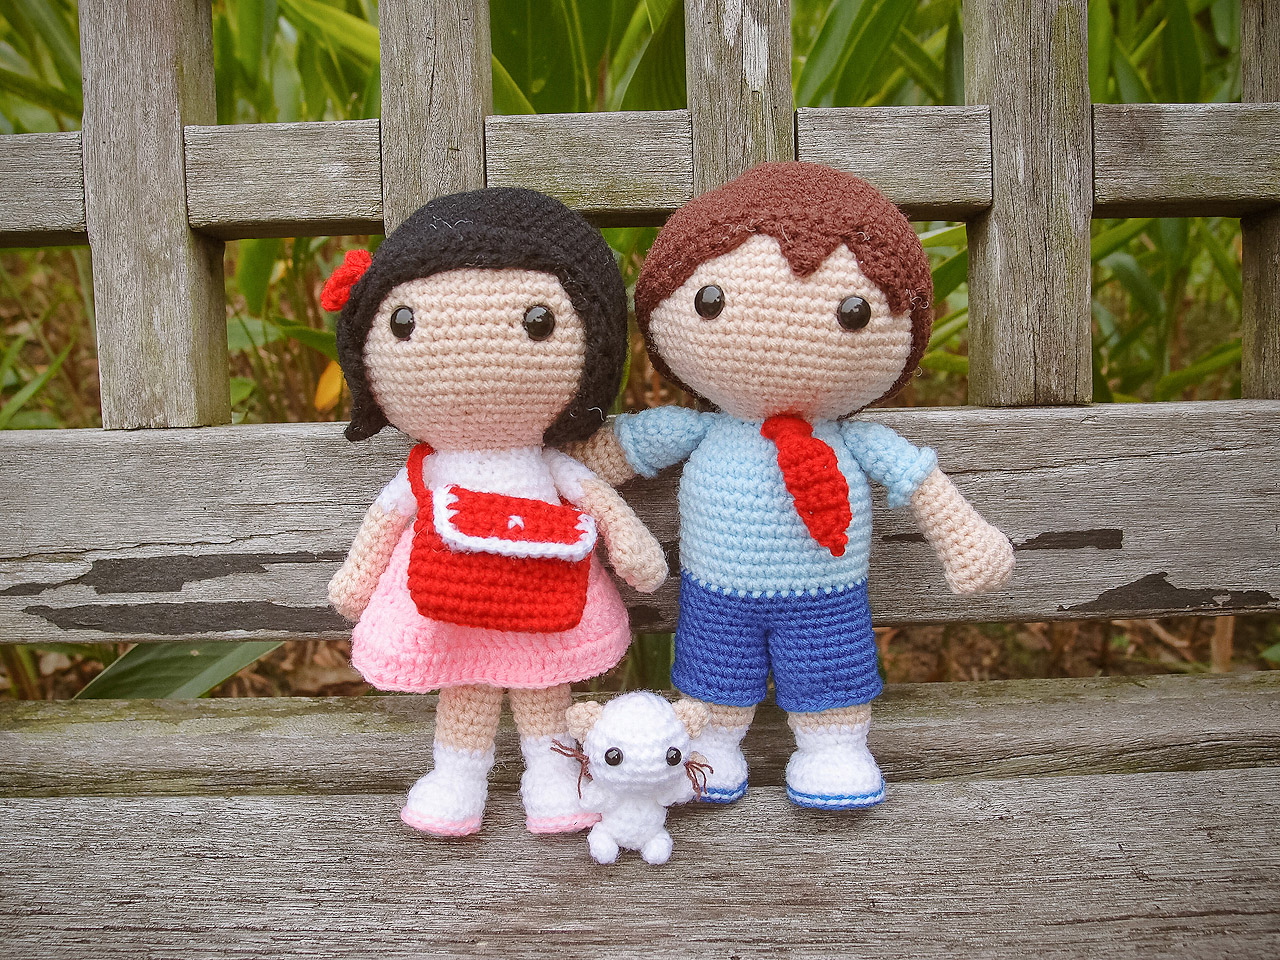 Amigurumi Free Pattern Couple : Sweet Couple Amigurumis ~ Snacksies Handicraft Corner